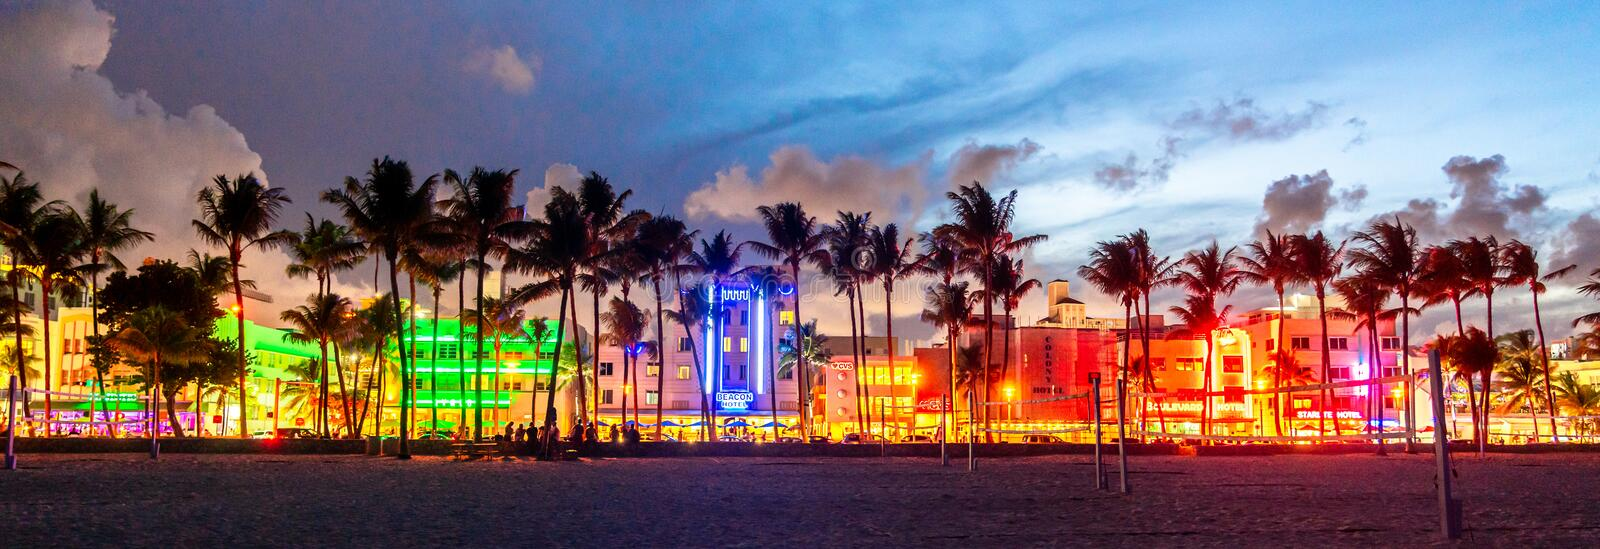 Miami Beach, USA - September 10, 2019: Panorama of Ocean Drive hotels and restaurants at sunset. City skyline with palm stock photography